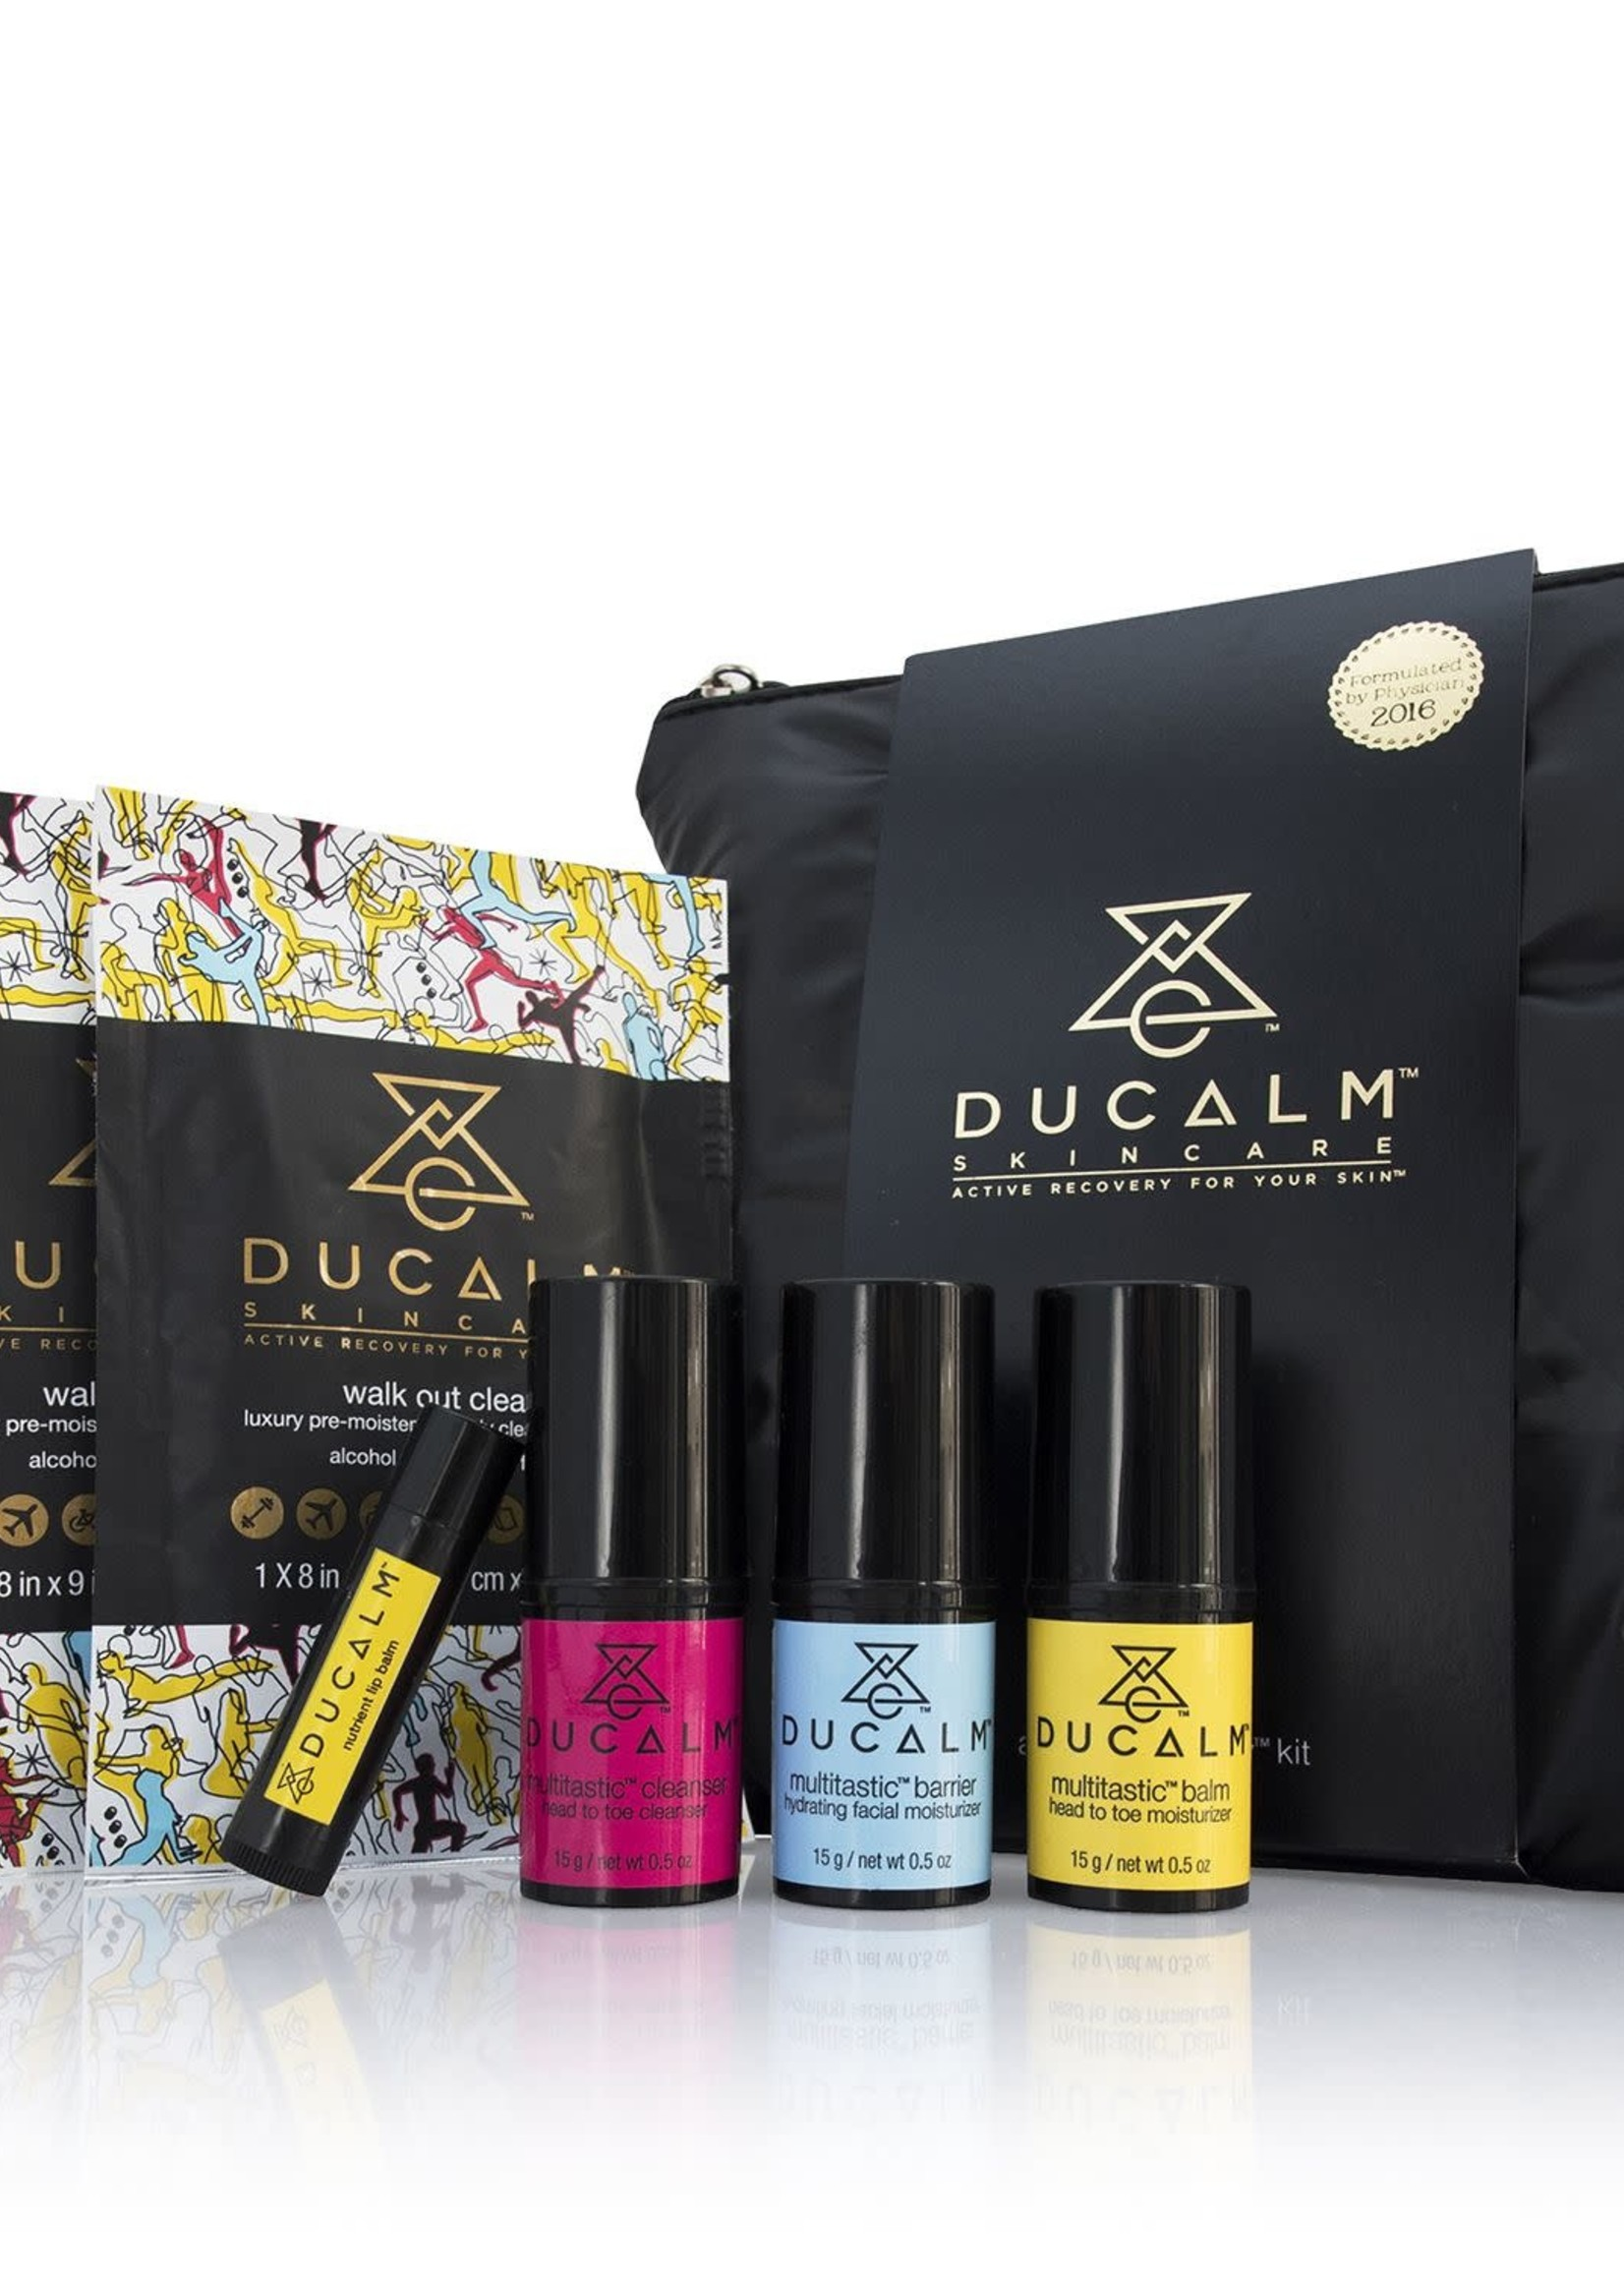 Ducalm Recovery Kit